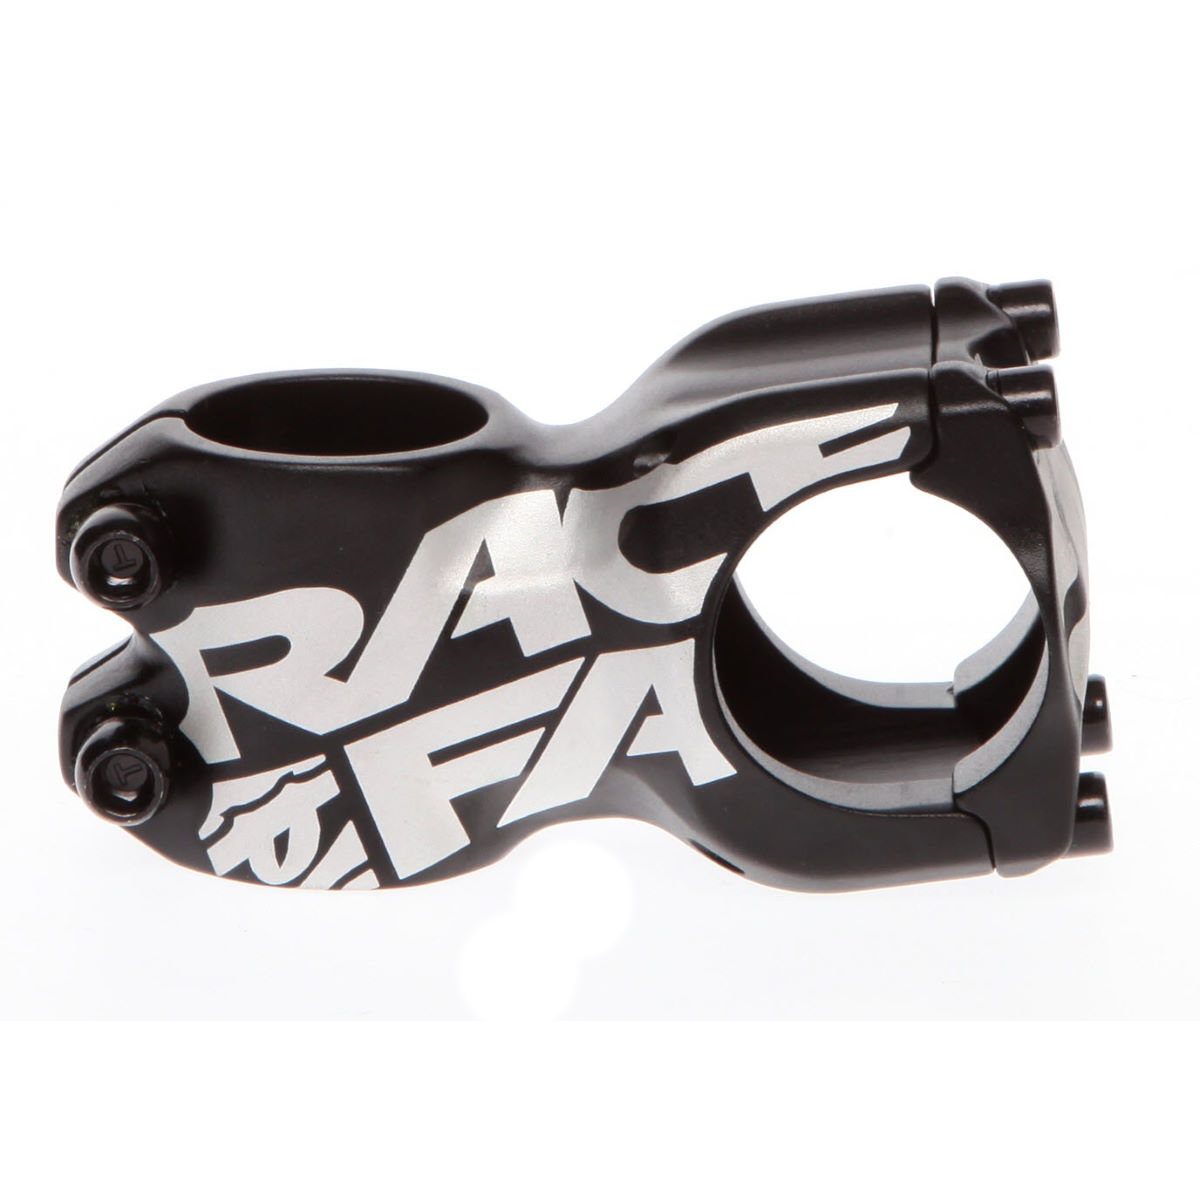 Potence VTT Race Face Chester - 050mm x 31.8mm Noir Potences